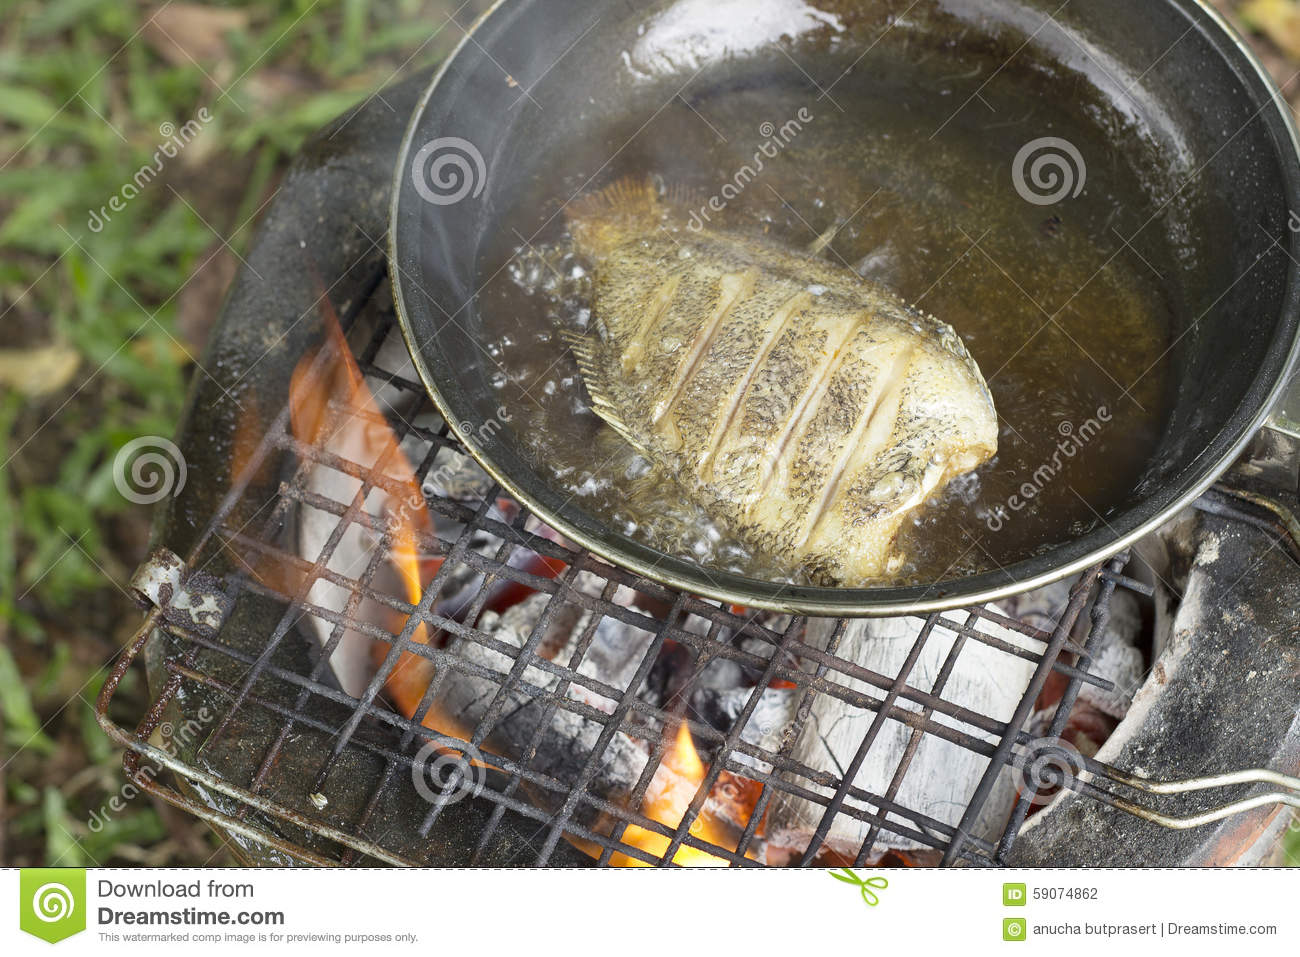 Cooking Fry The Fish On Camping In The Forest. Stock Photo.